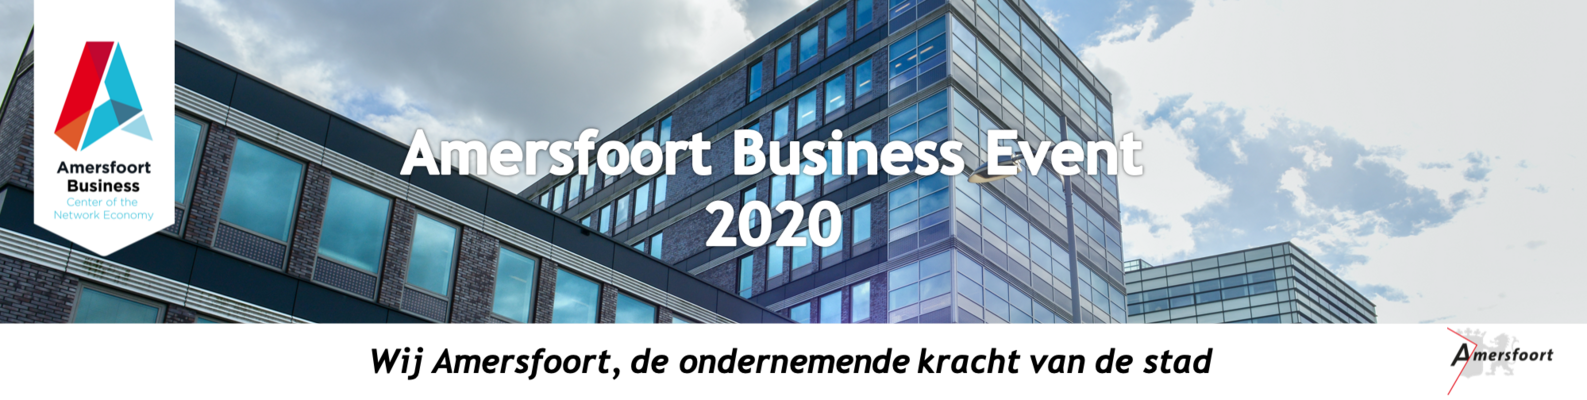 Amersfoort Business Event 2020- Ambassadeurs